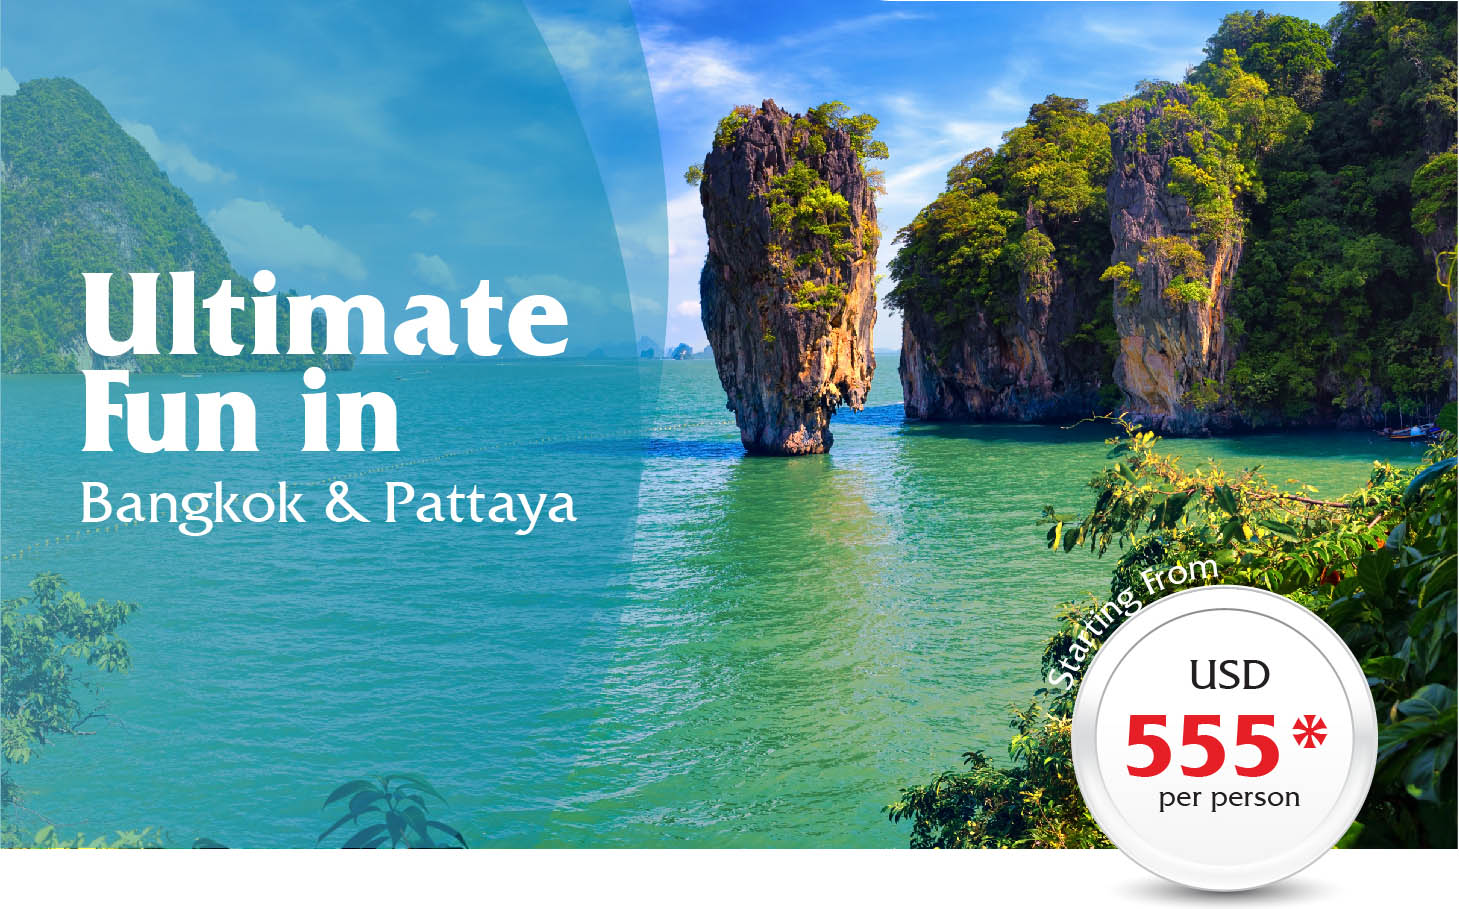 Ultimate Fun in Bangkok & Pattaya